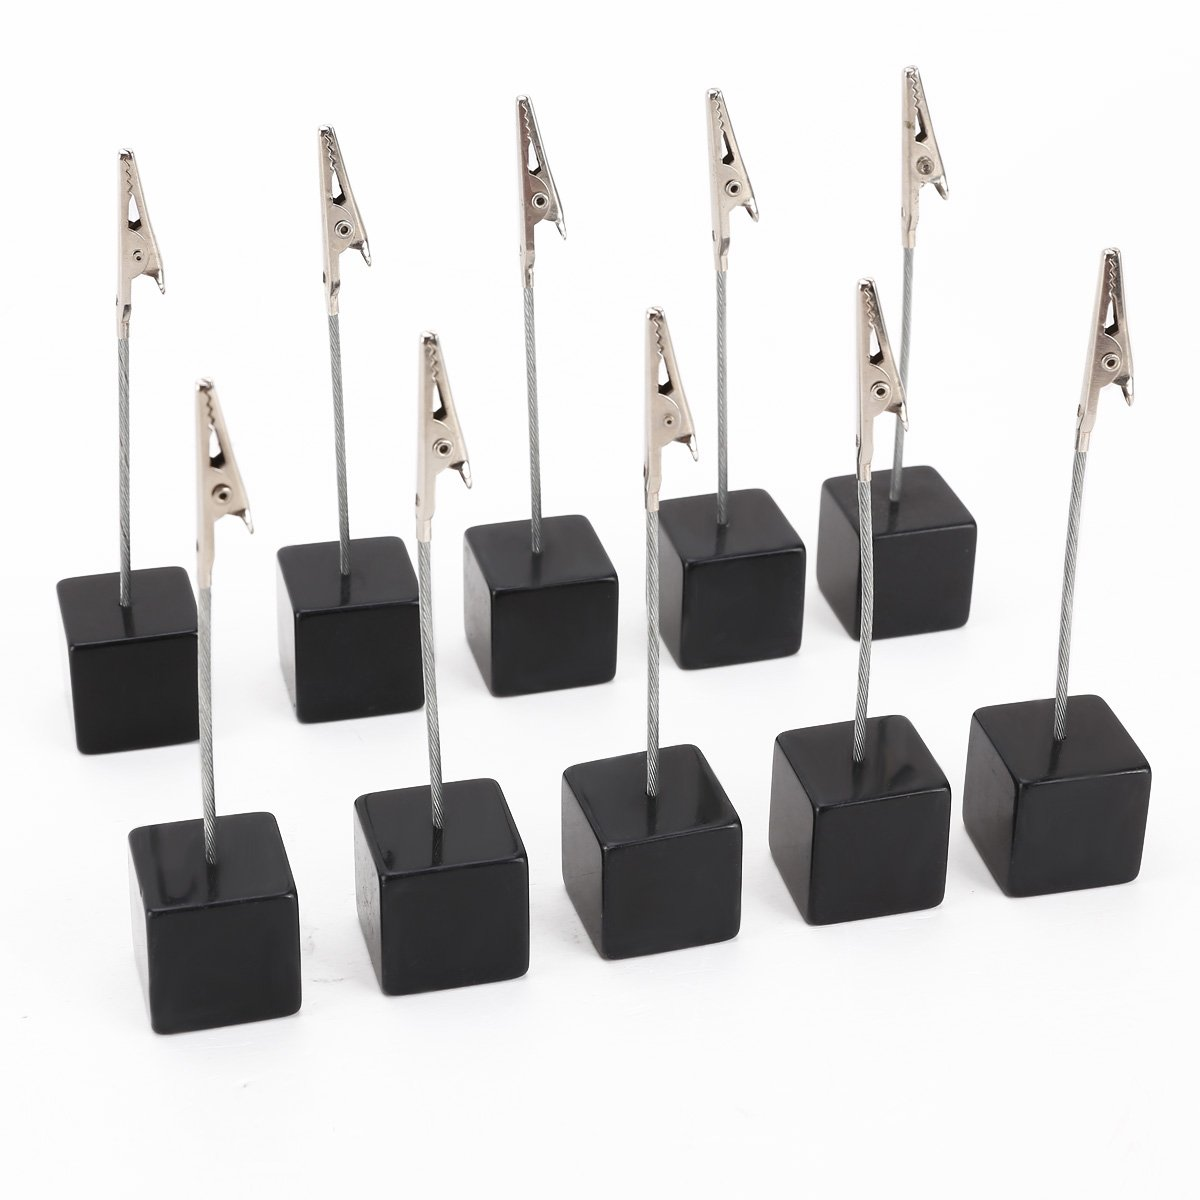 eBuyGB Dice Place Wedding Card Holders, Acrylic, Black, 2.5 cm 12127